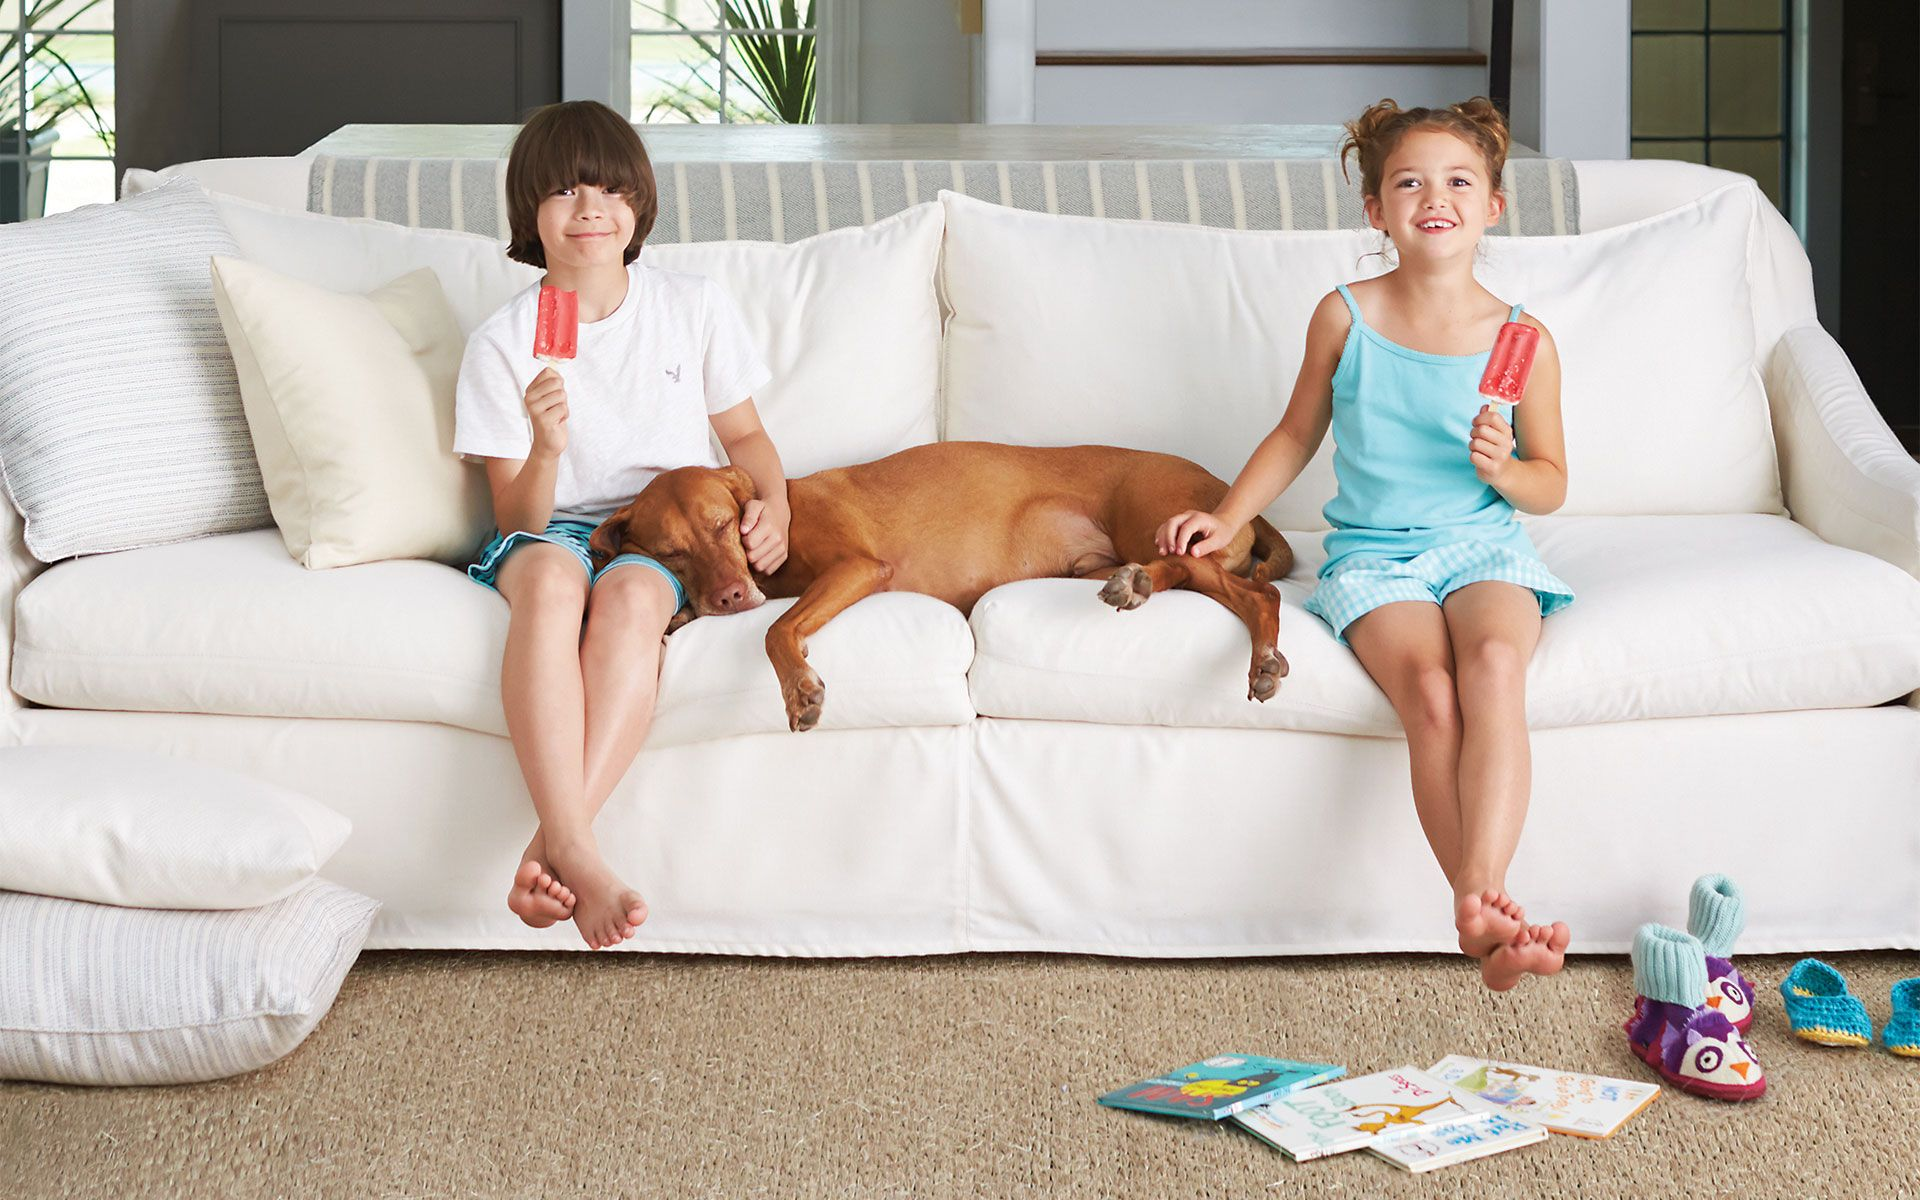 Sunbrella fabrics are so easy to clean they are completely worry free let kids be kids and pets be pets even with white furniture